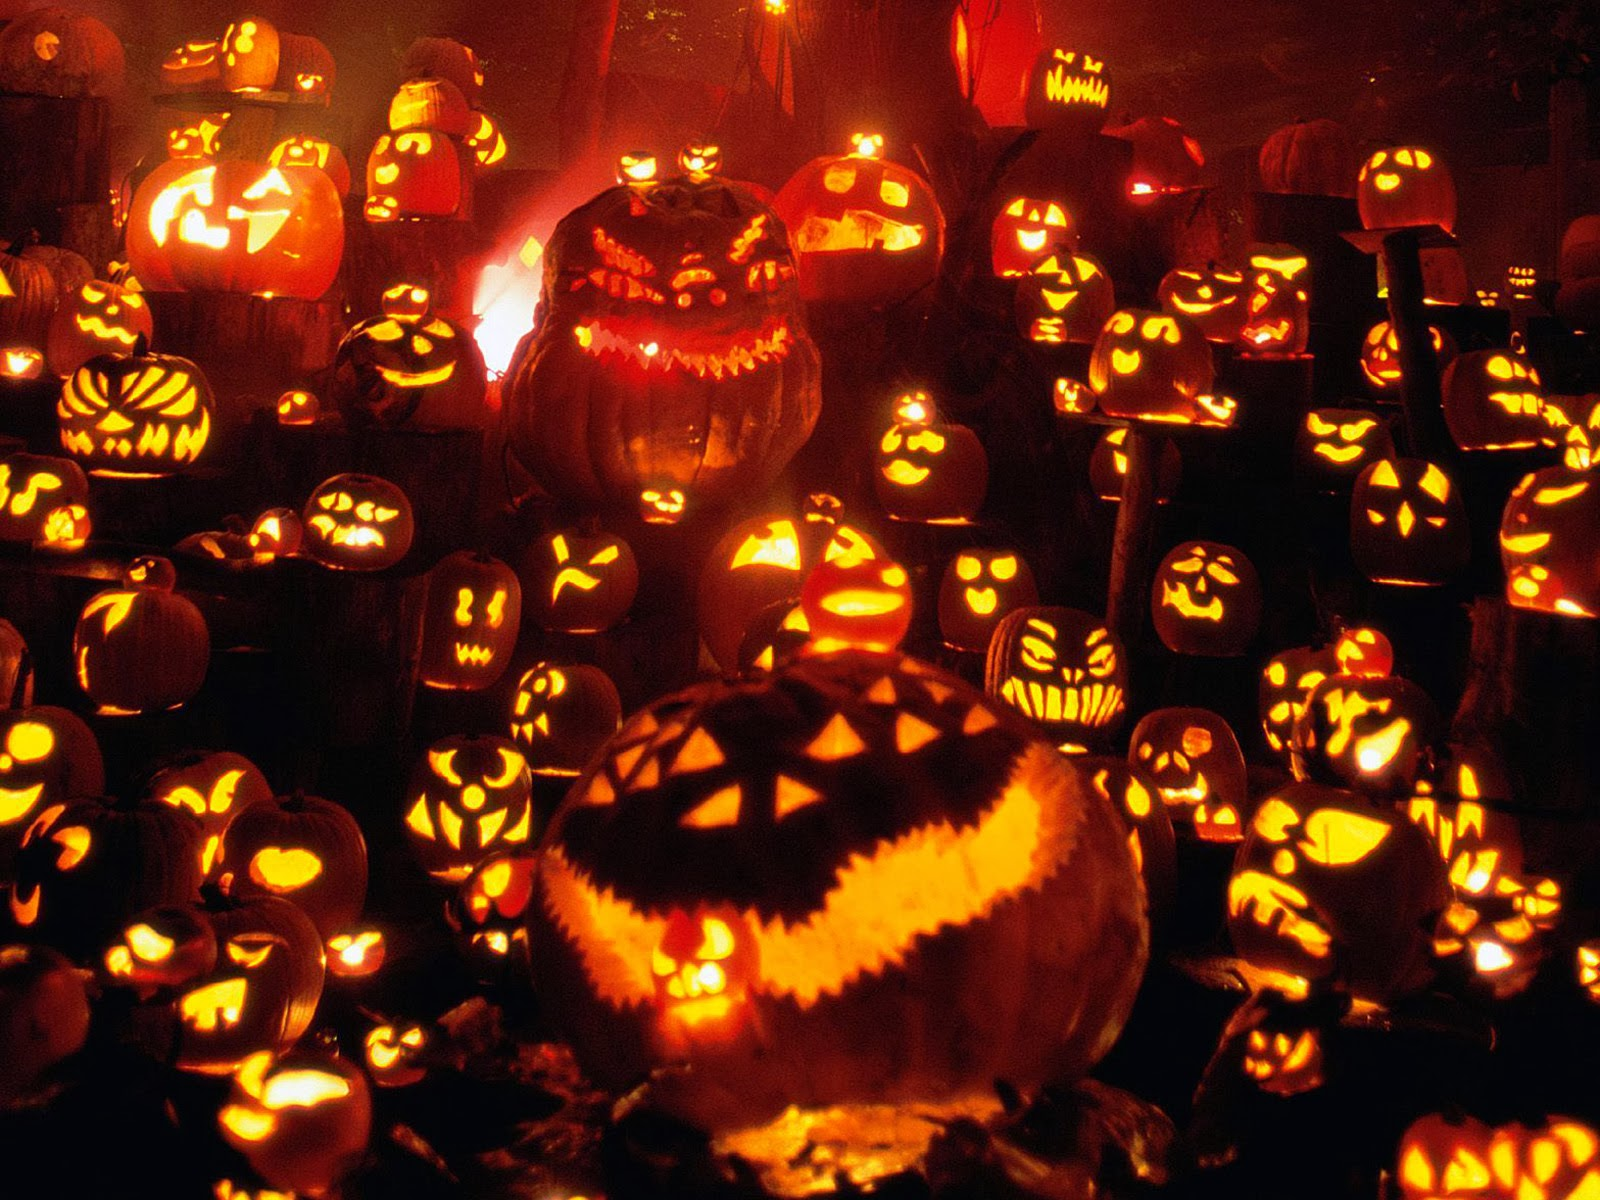 the celebration of halloween began in ireland in about 1000 ad so its no wonder that there are so many irish halloween traditions that continue around the